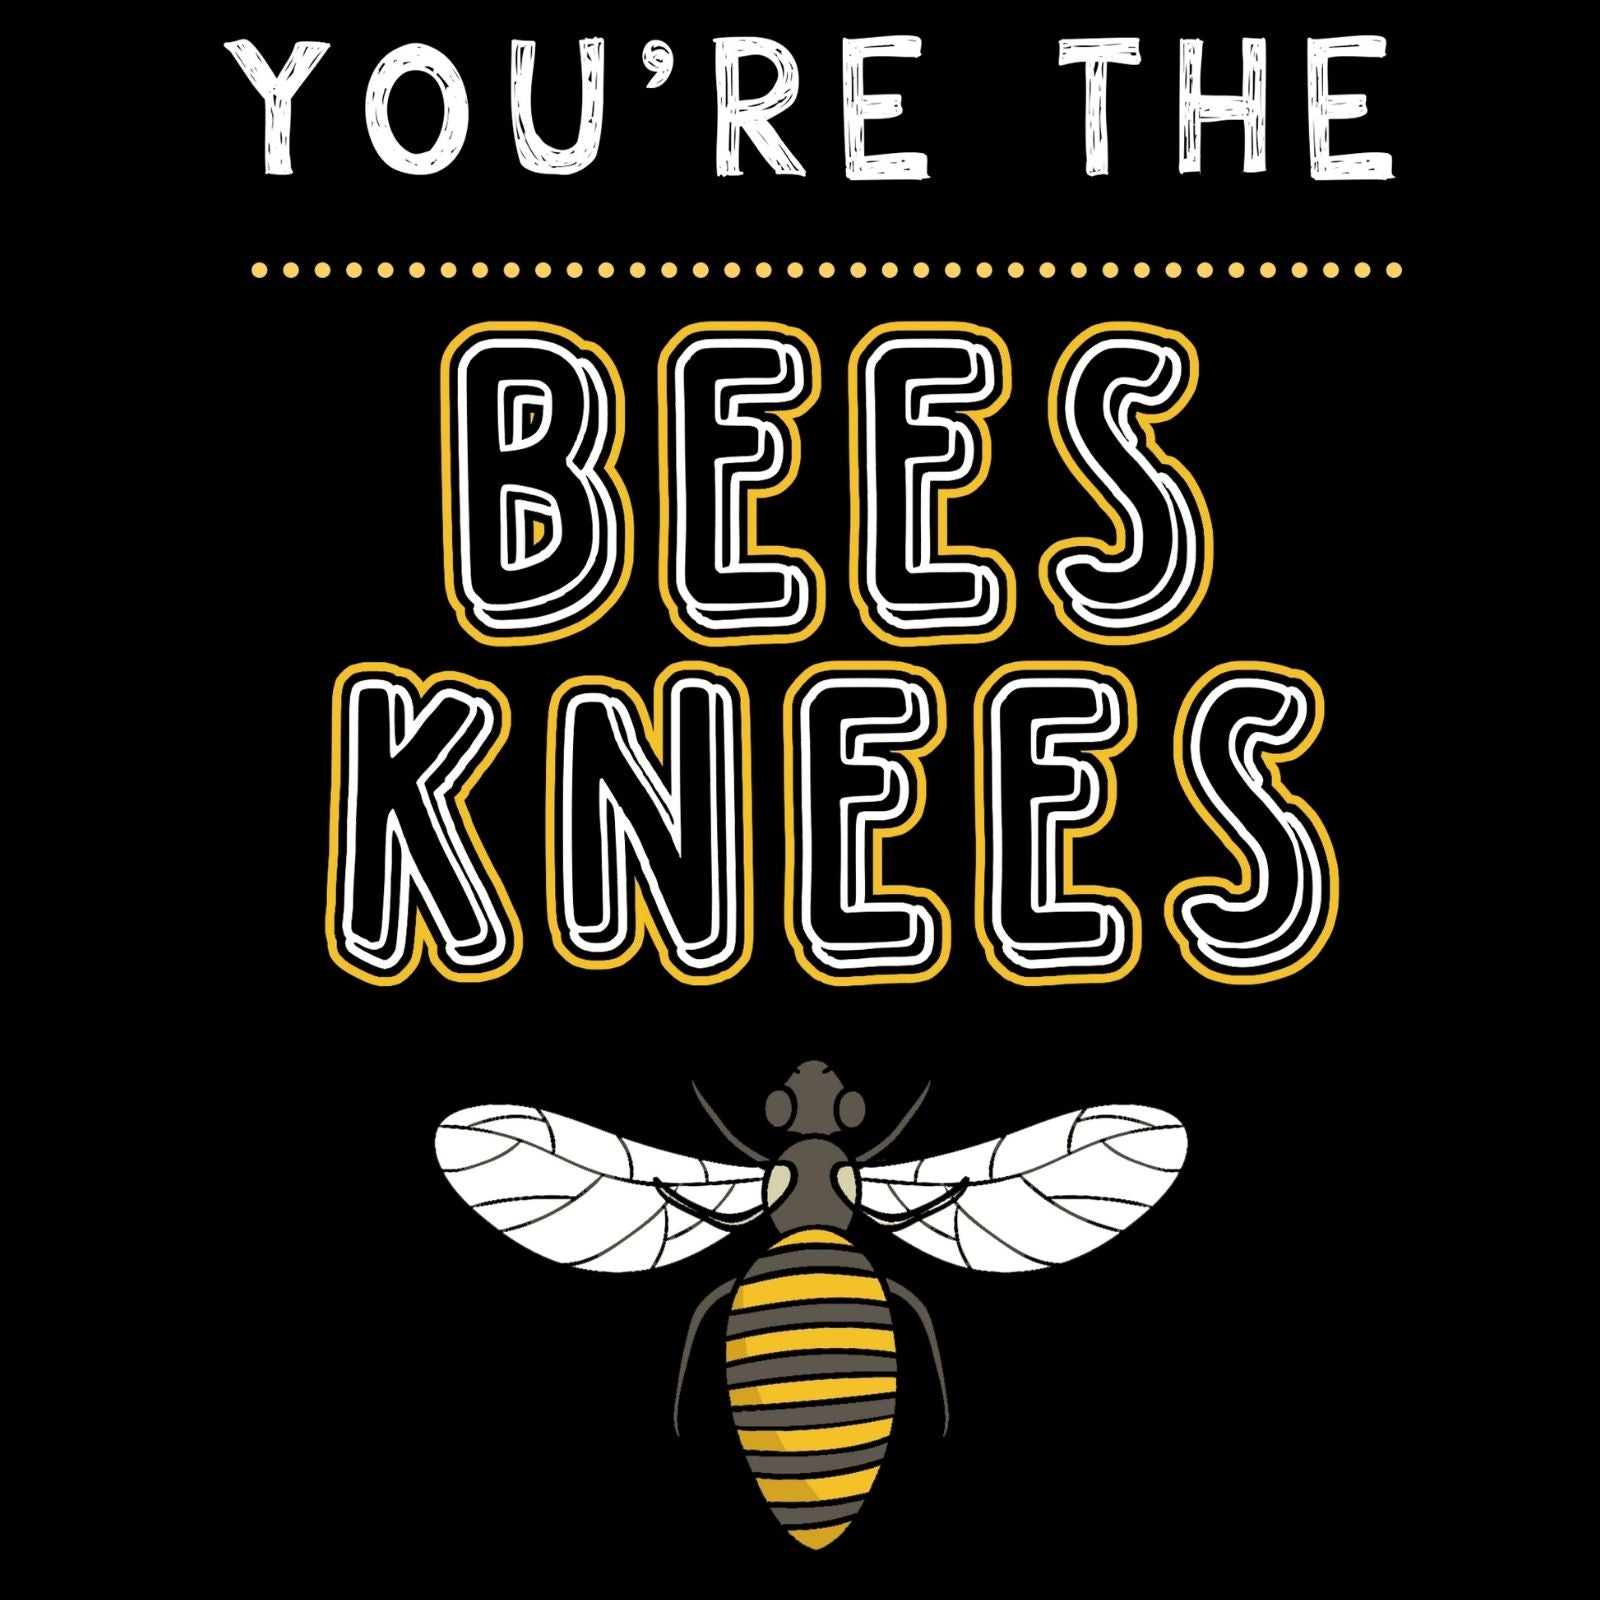 You're The Bees Knees - Bastard Graphics